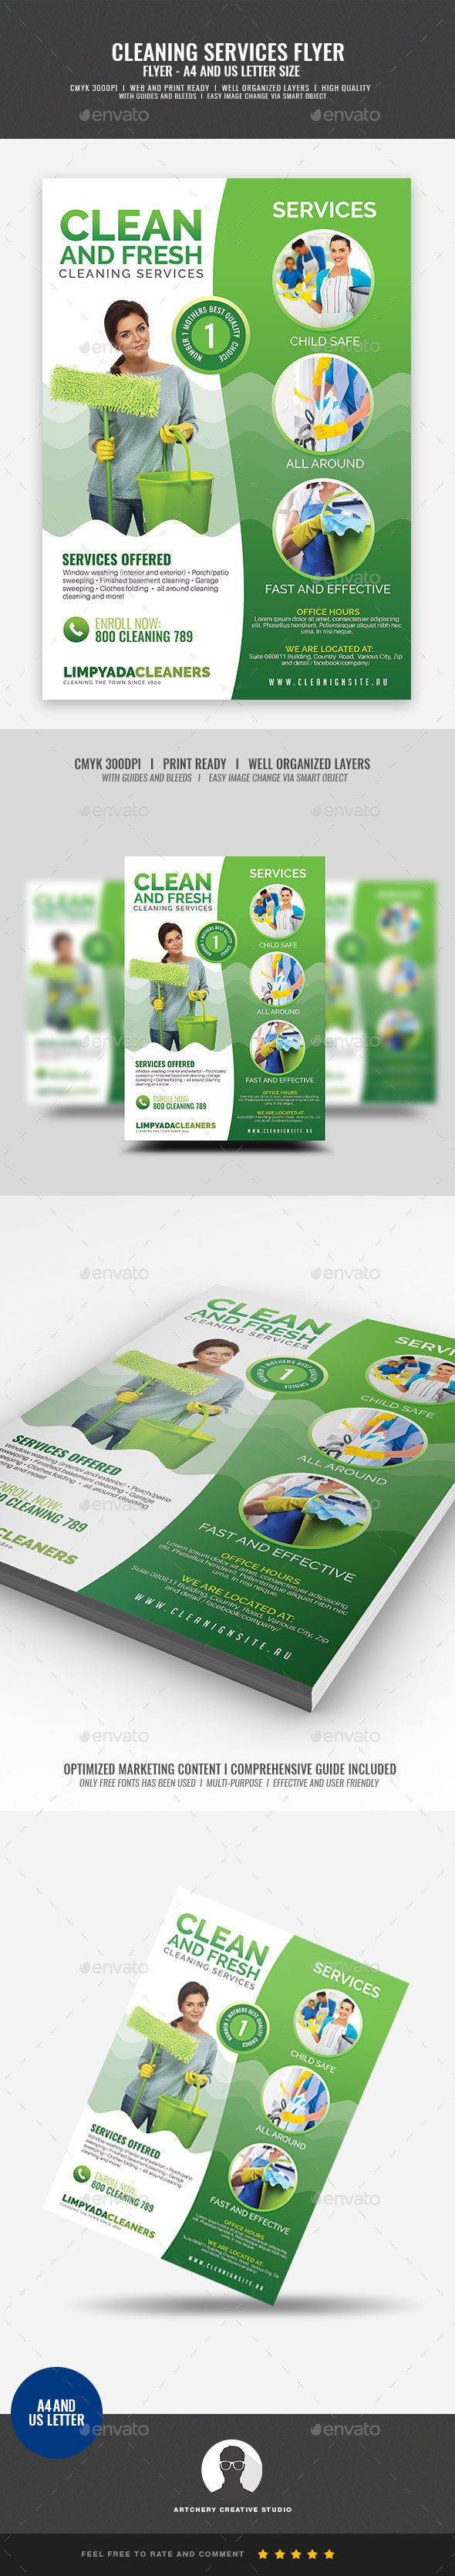 House Cleaning Services Promotional Flyer  Promotional Flyers